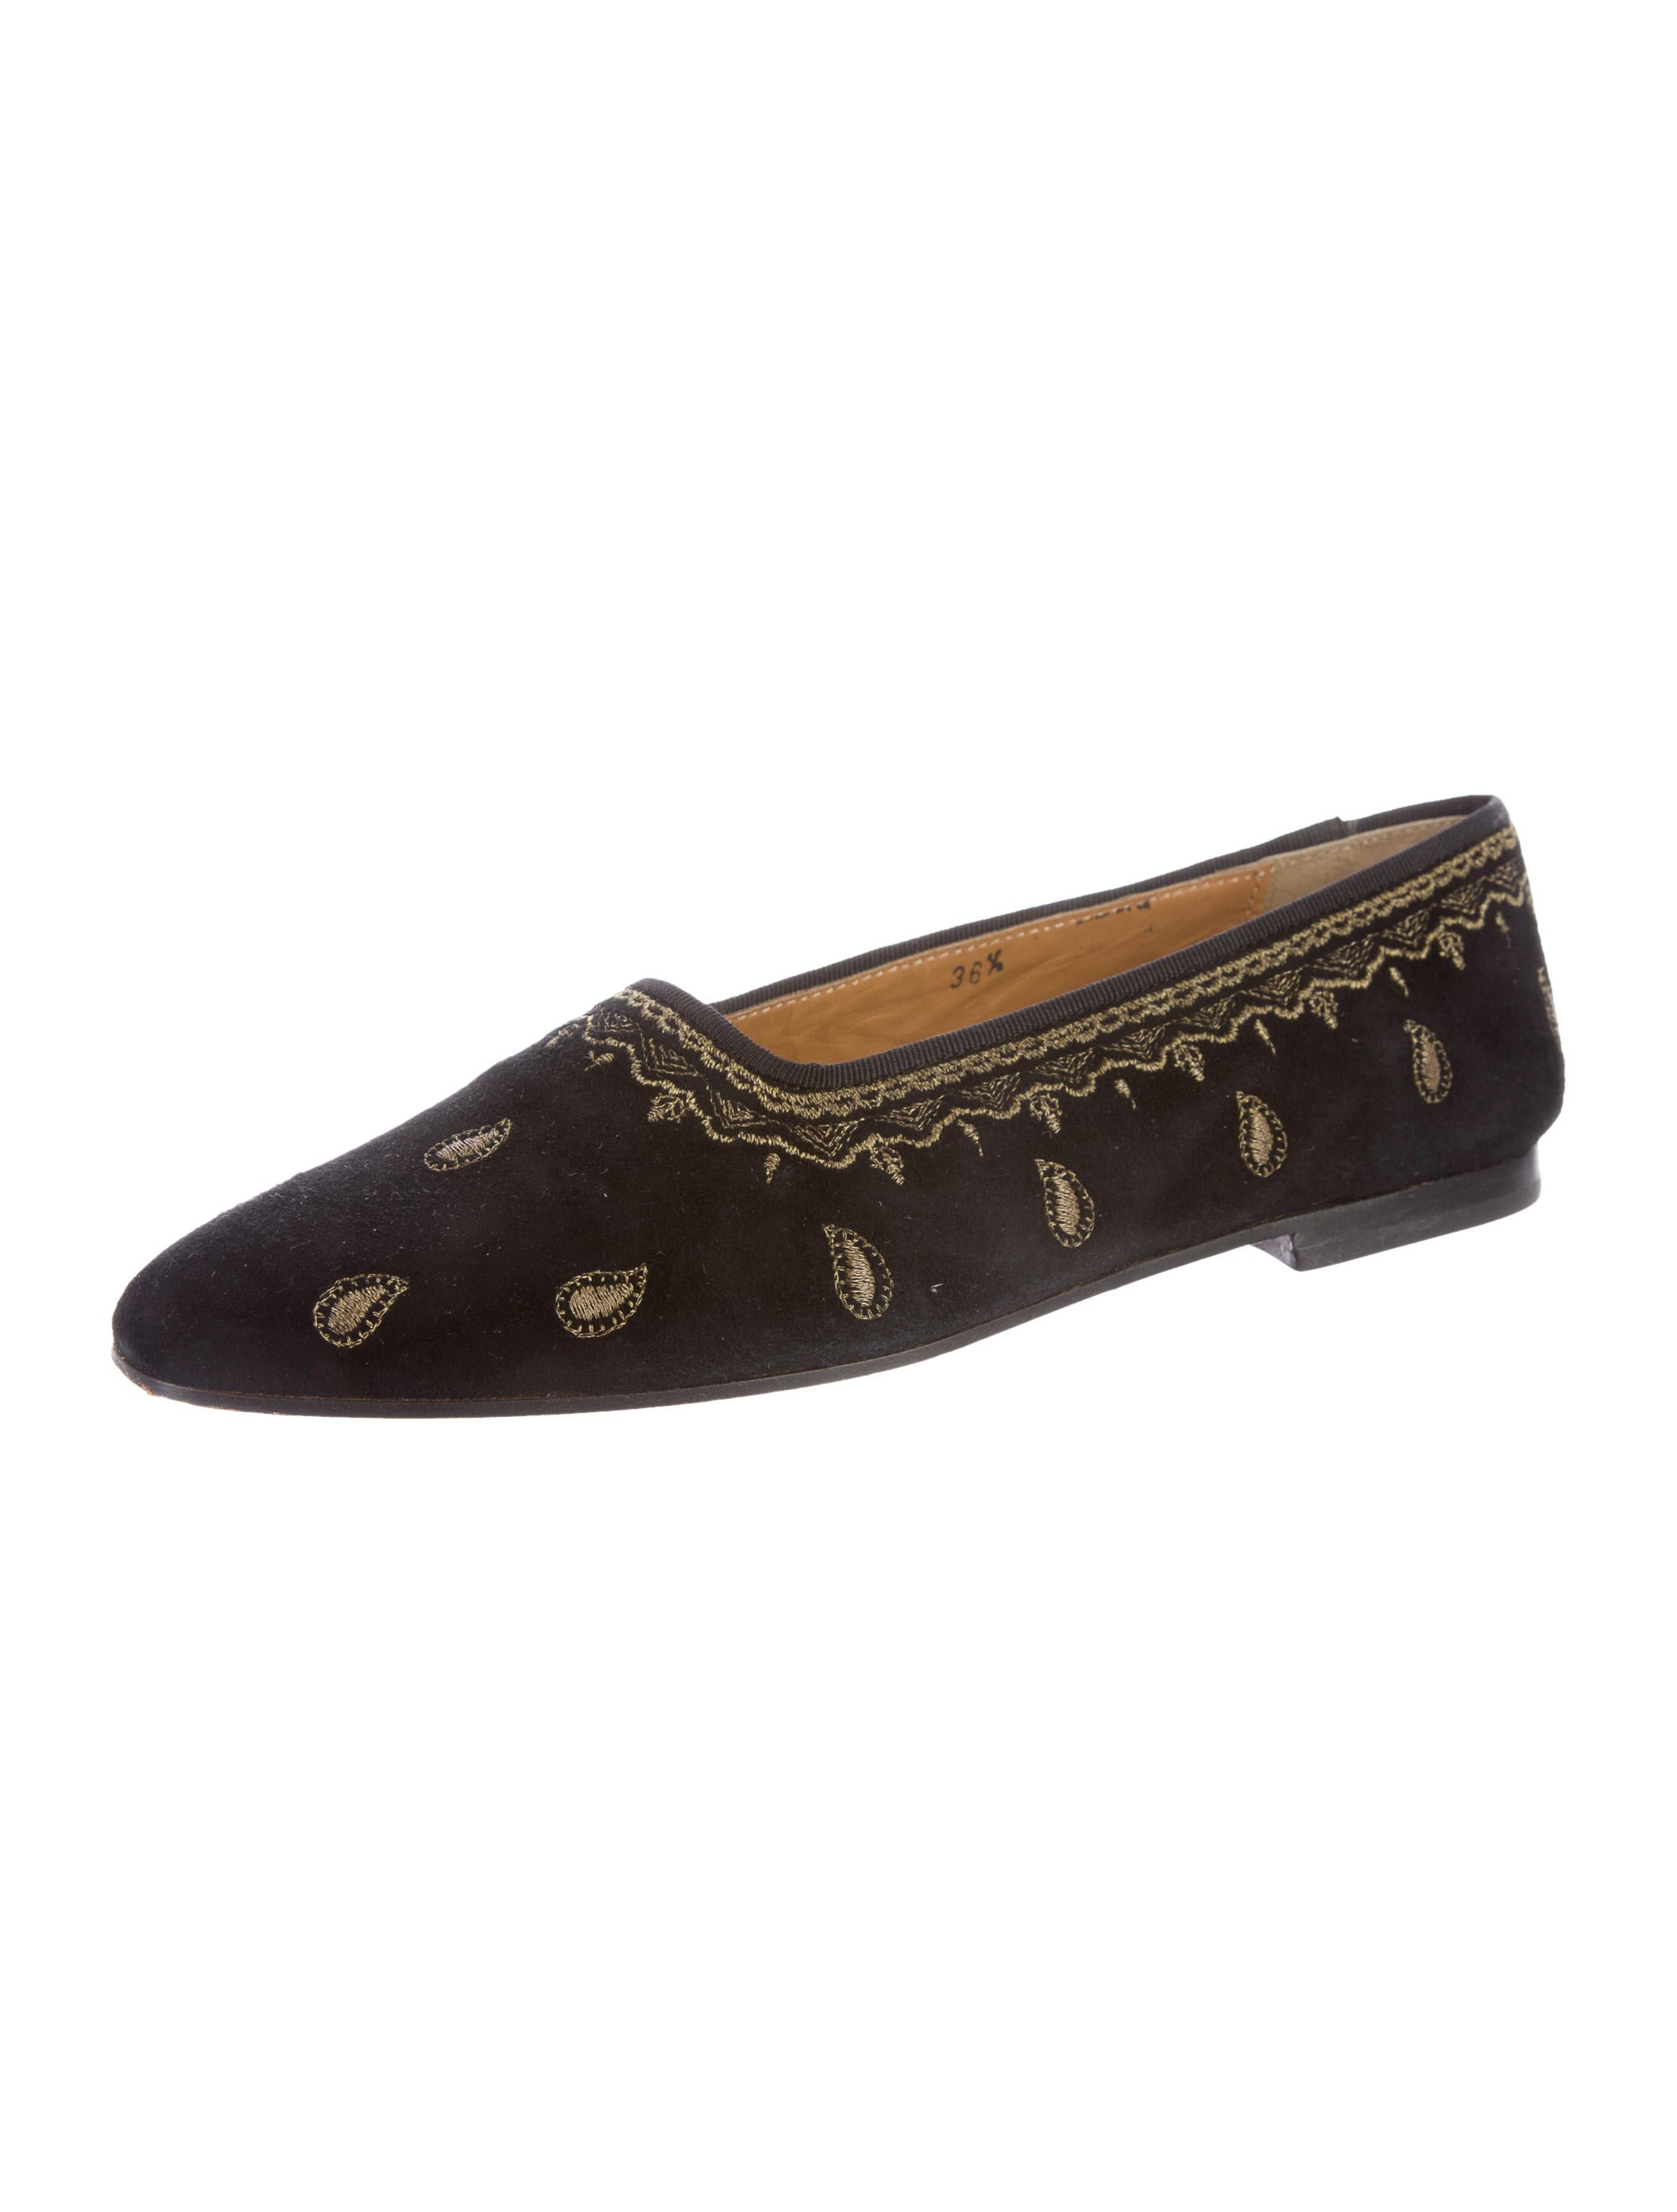 Hermu00e8s Suede Round-Toe Loafers - Shoes - HER89699 | The ...